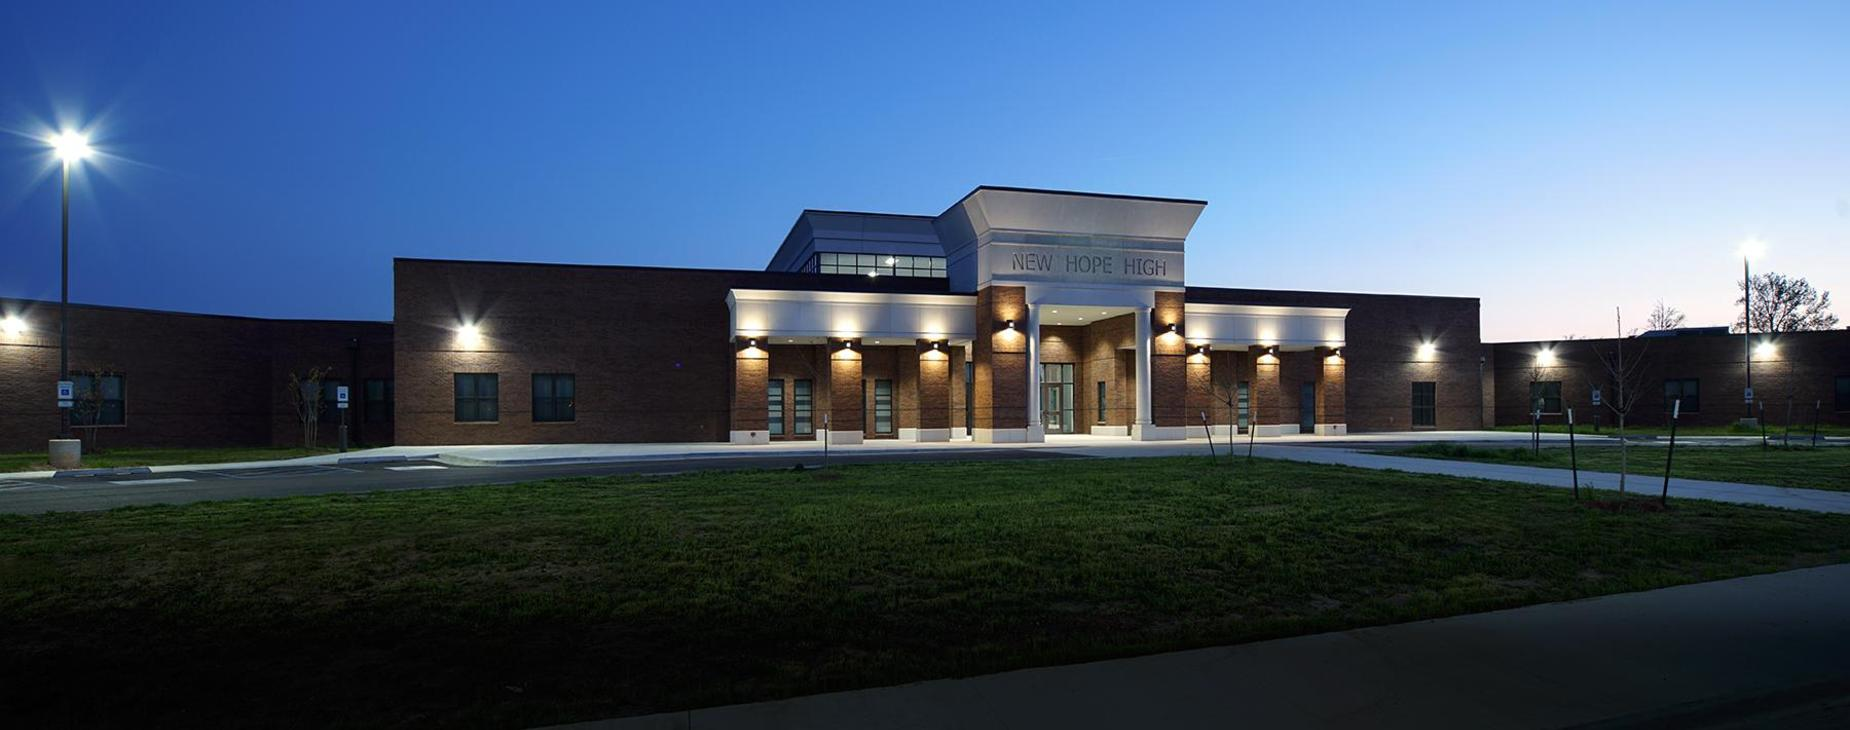 Front of New Hope High School